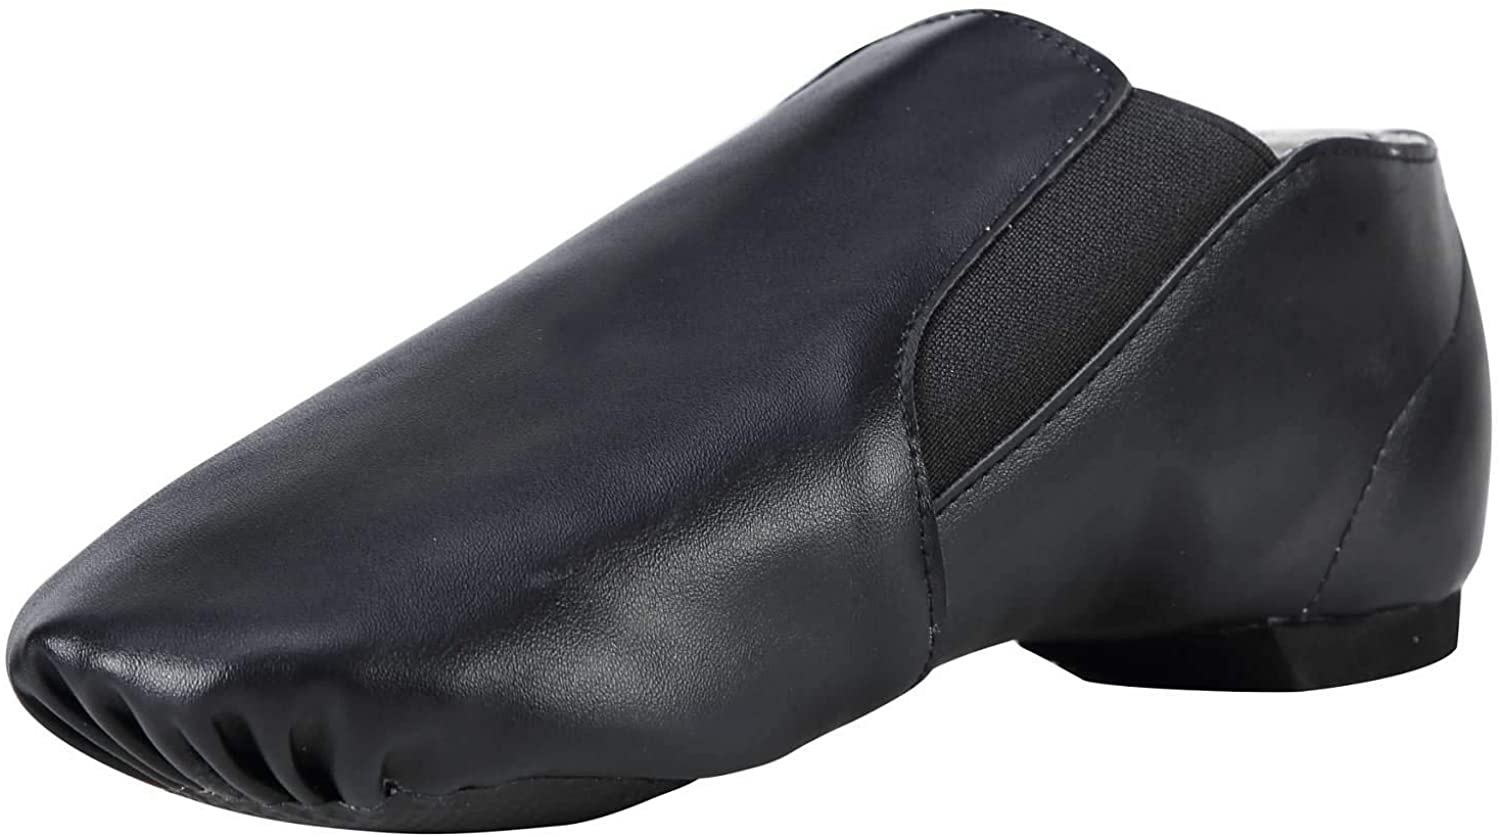 Dynadans Unisex PU Leather Upper Slip-on Jazz Shoe with Elastics for Women and Men's Dance Shoes